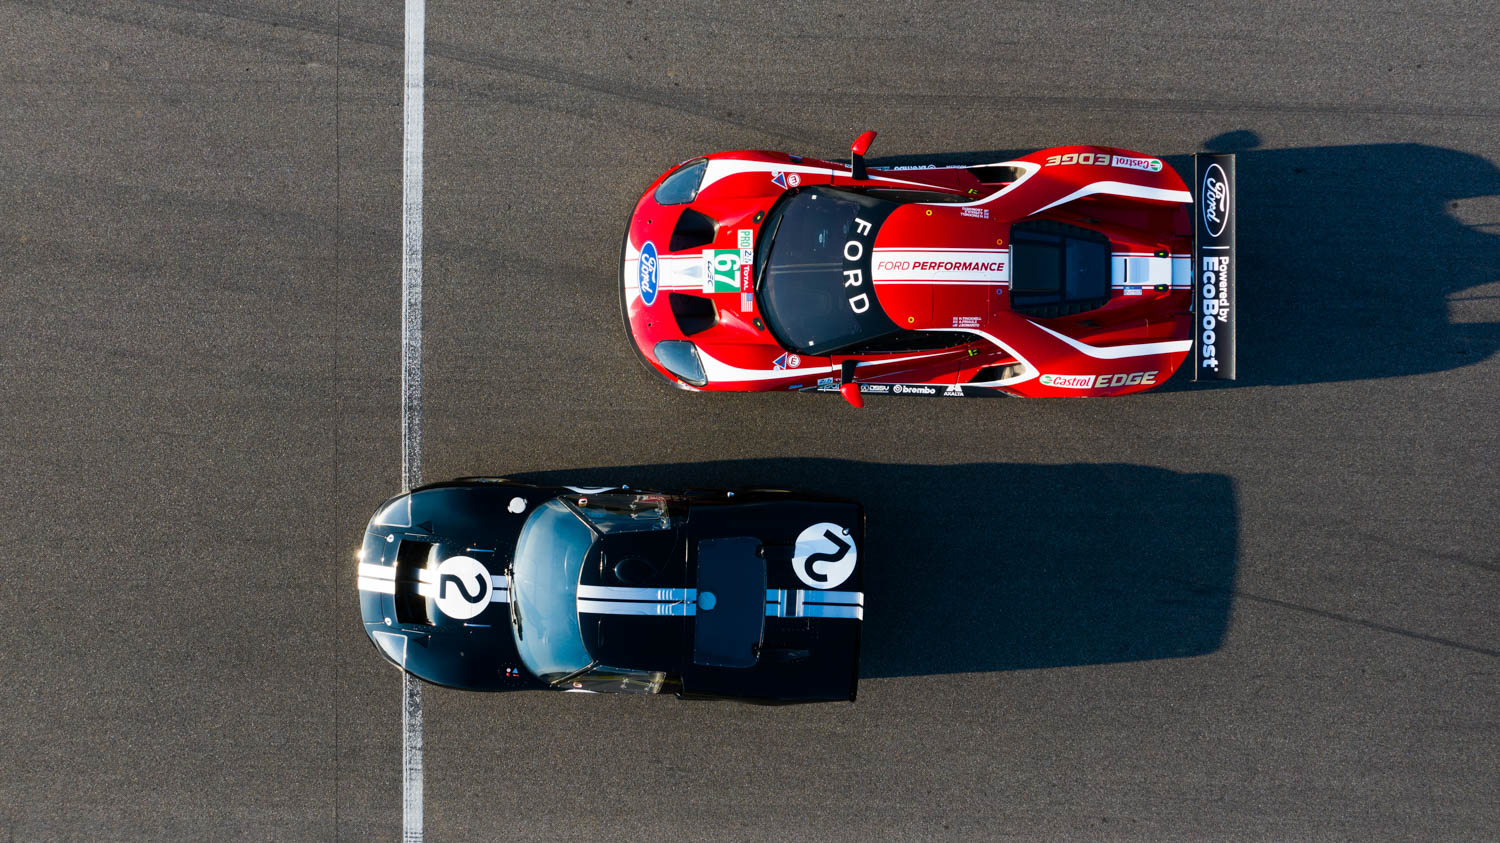 Digital and analog racers unite to salute Ford's racing heritage.